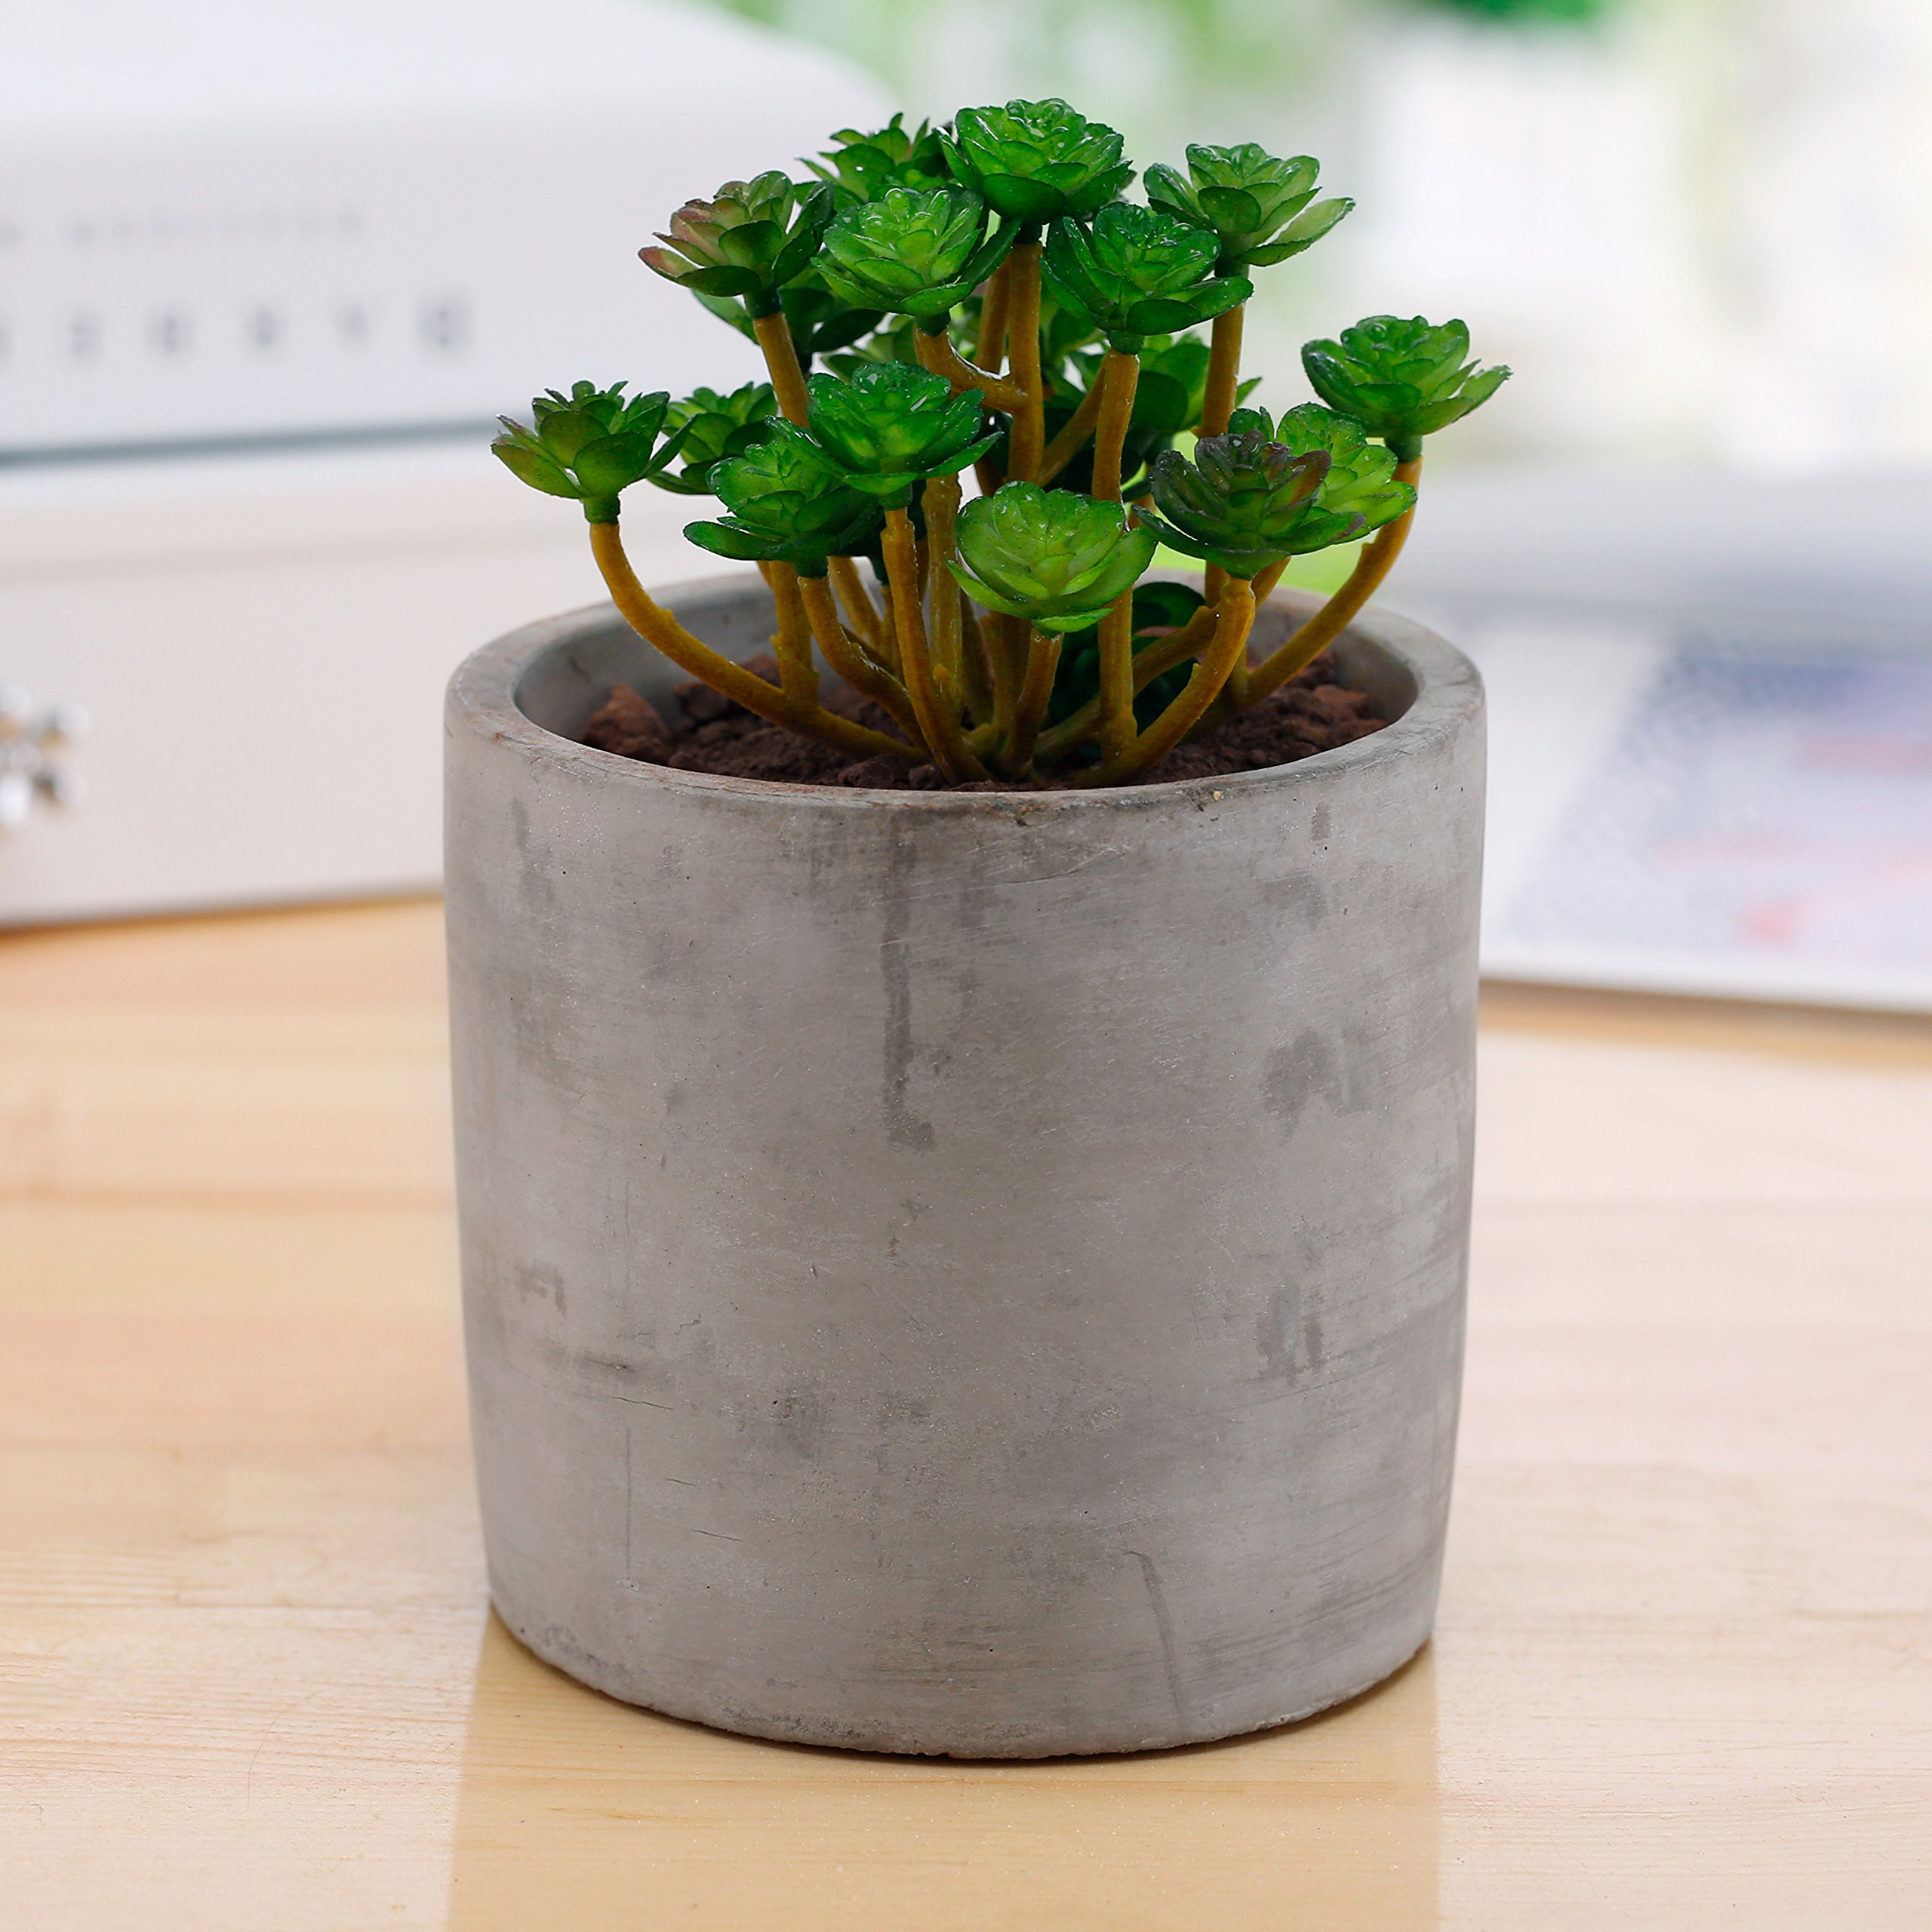 Miniature 4-inch Round Flower Plant Clay Planter Pot, Gray